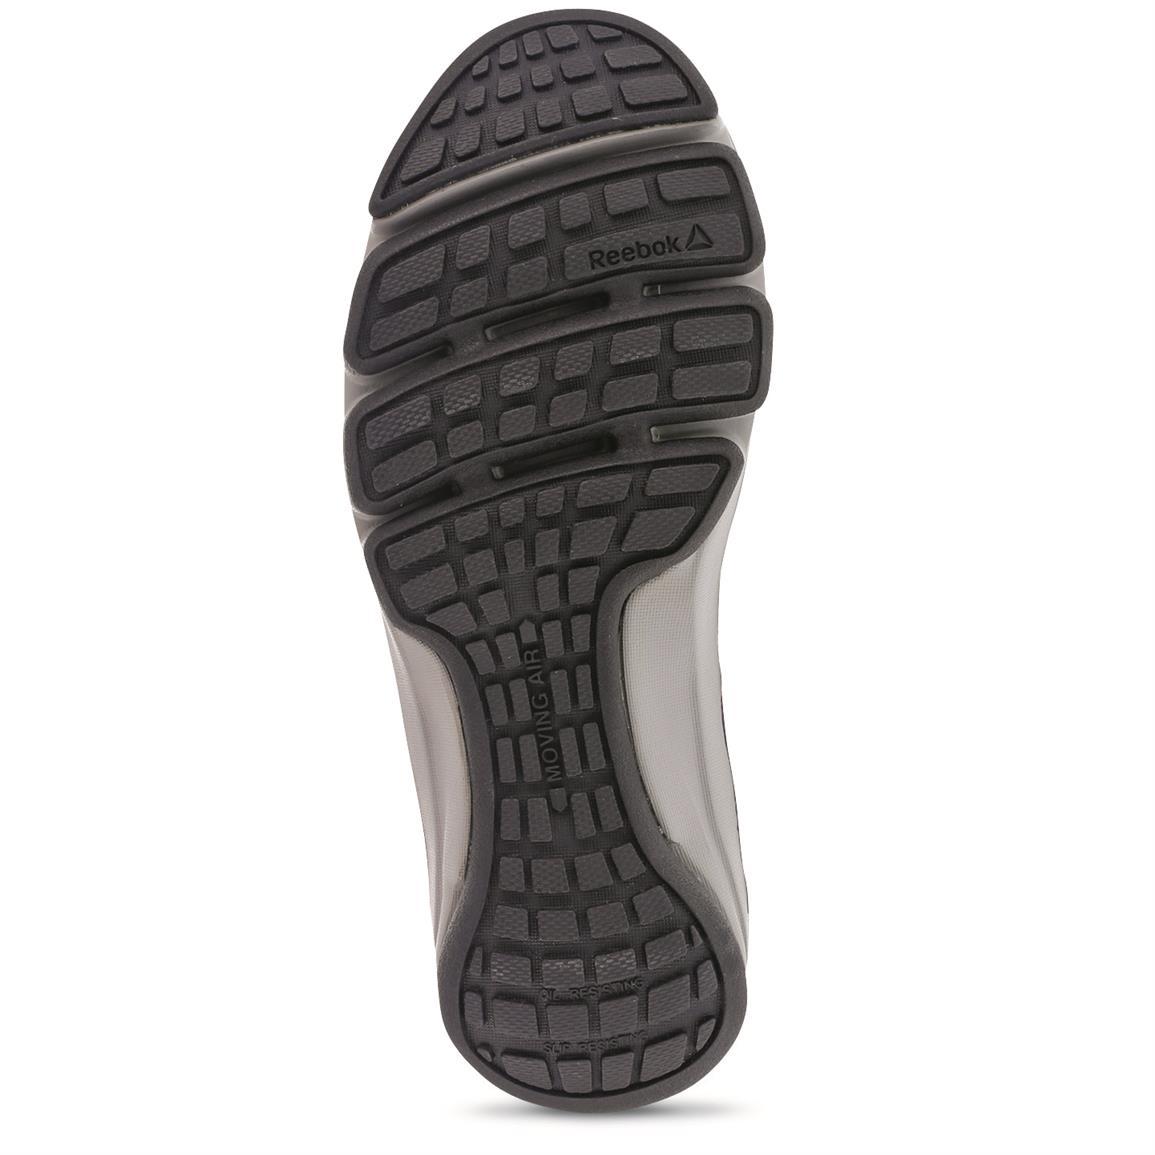 DMX Flex rubber outsole with top rating for slip resistance